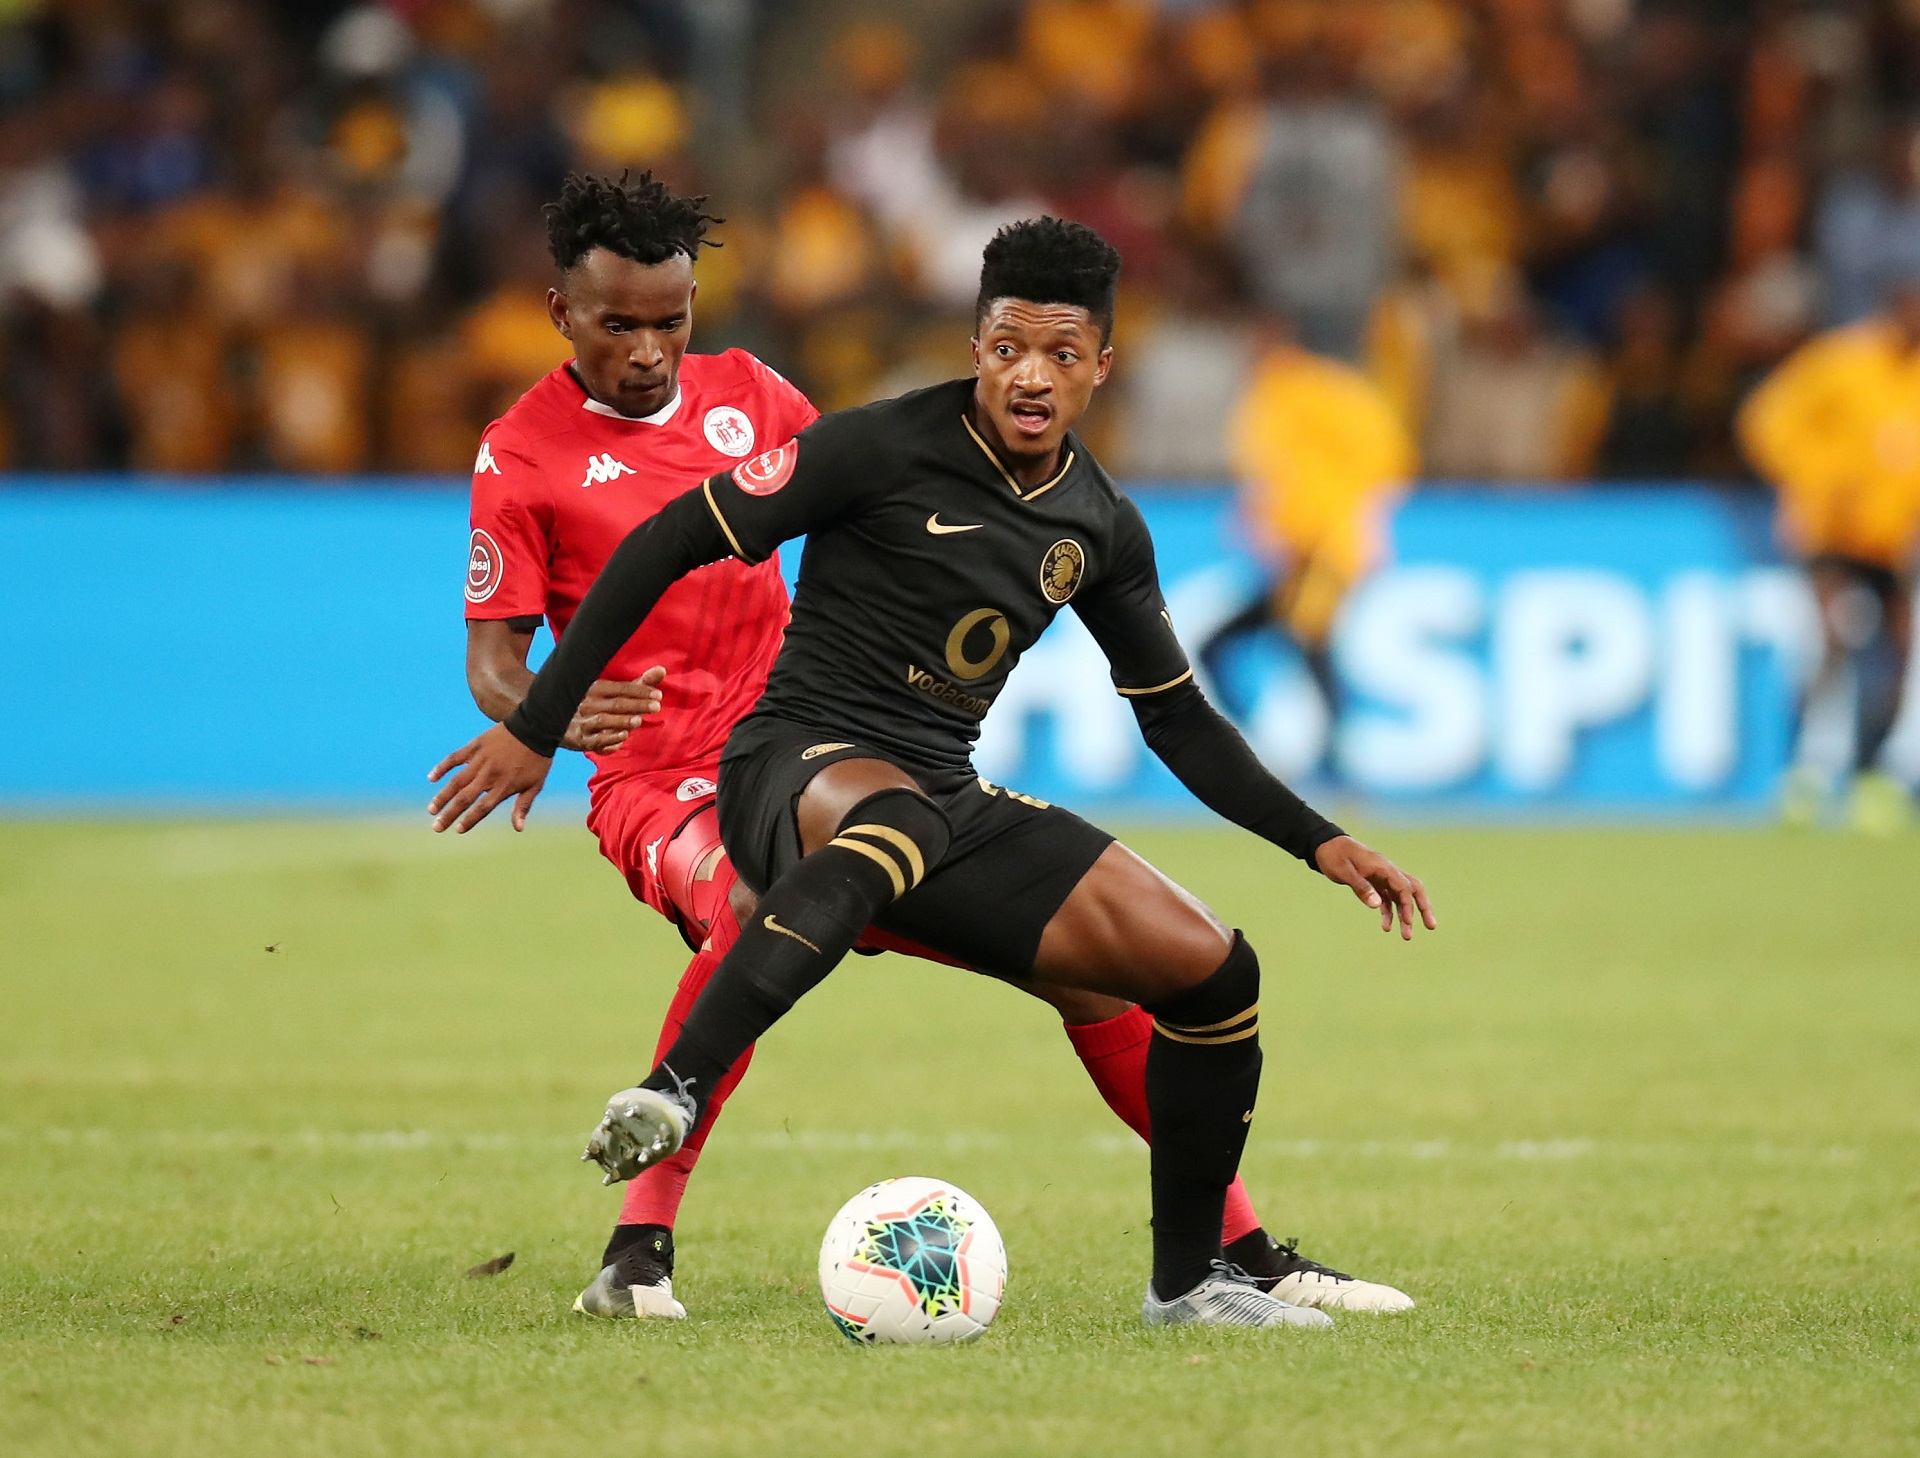 Nedbank Live: Highlands Park Vs Kaizer Chiefs photo